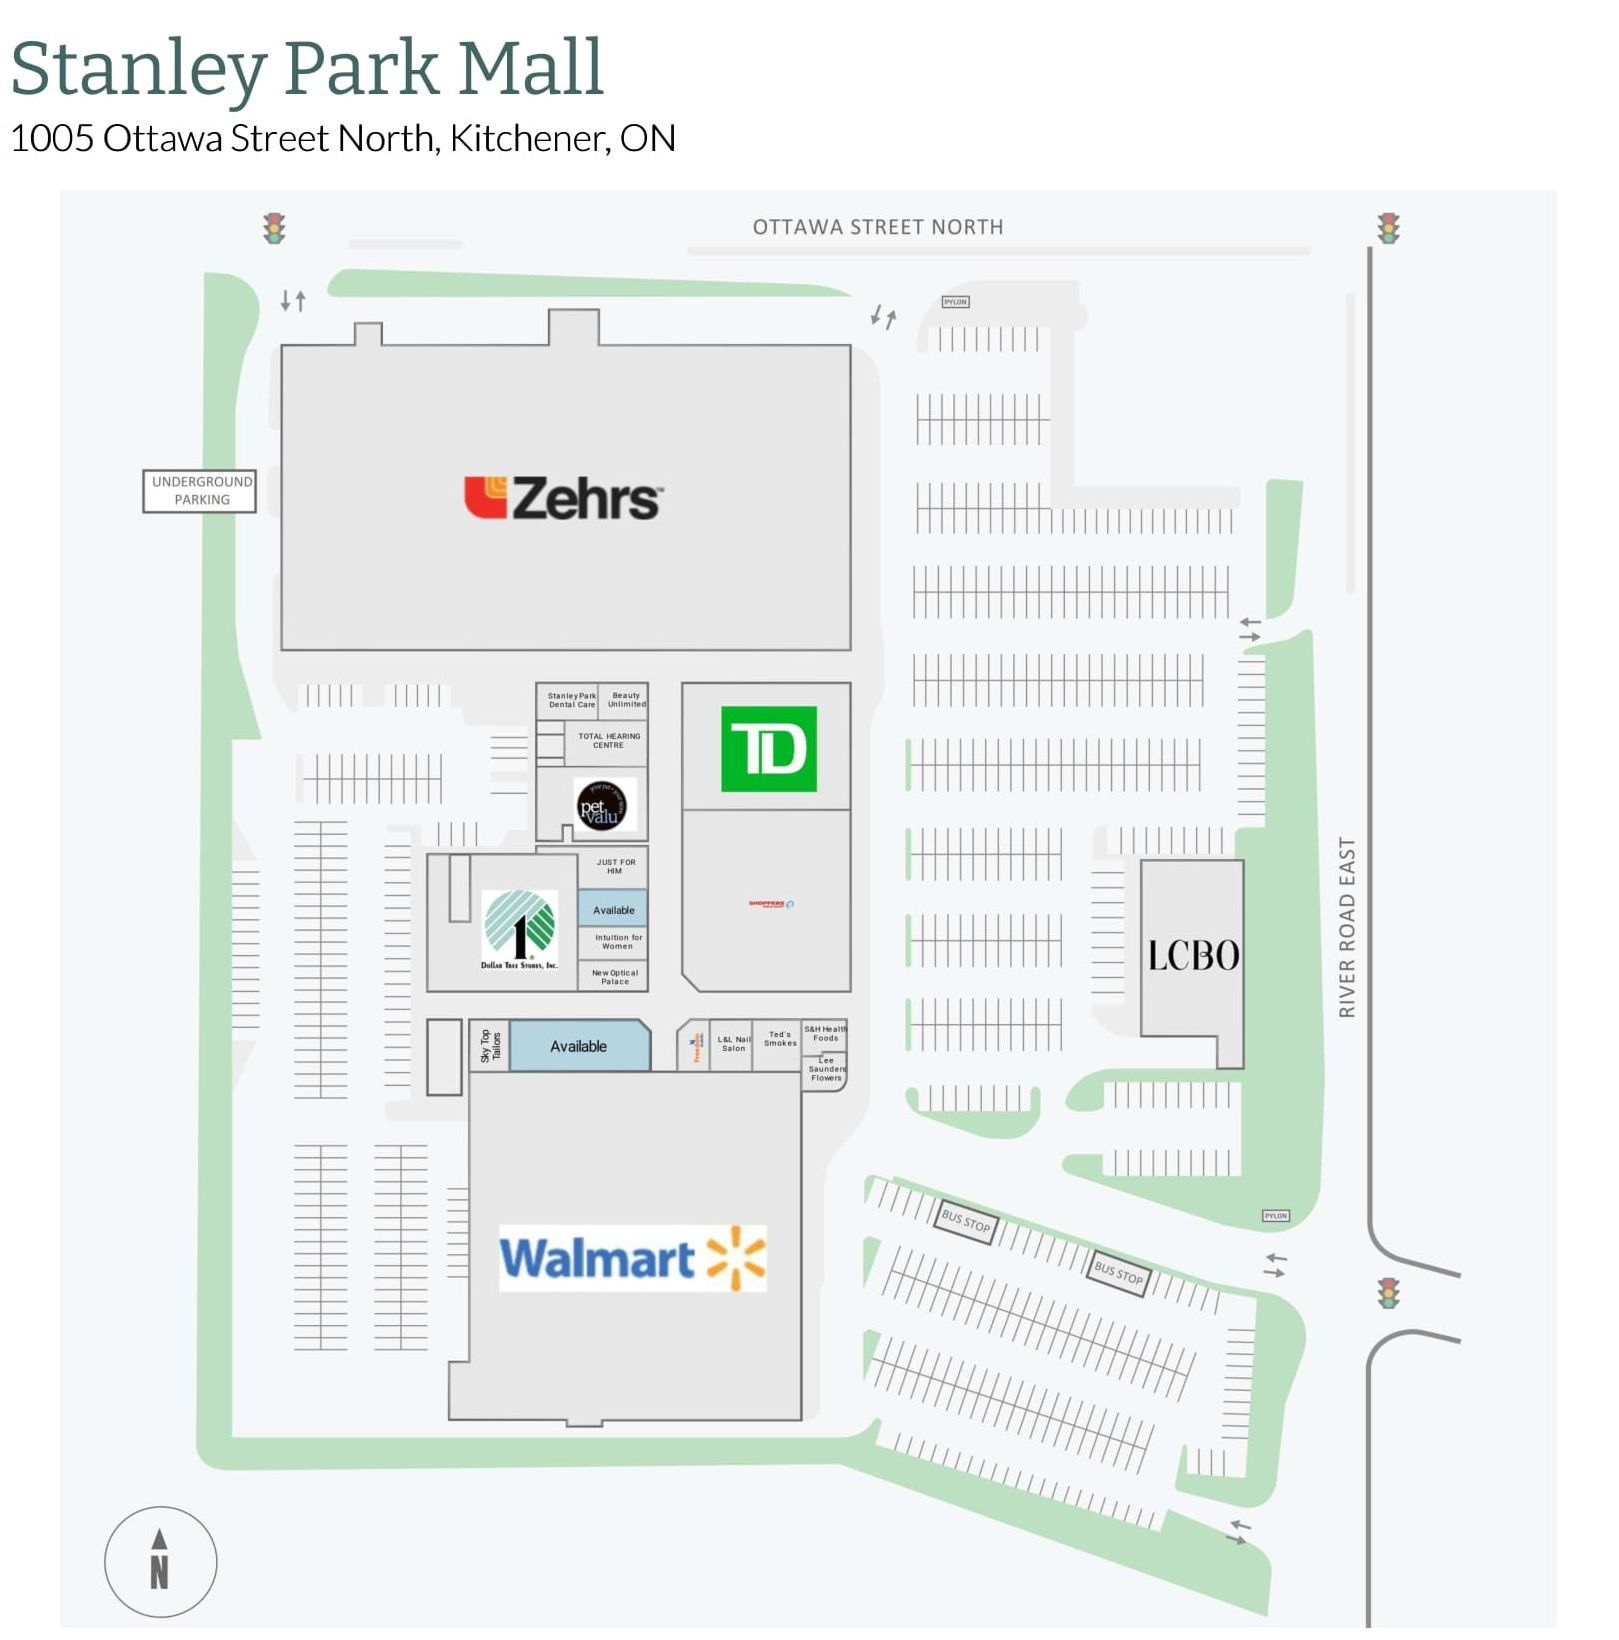 Stanley Park Mall Kitchener Stores